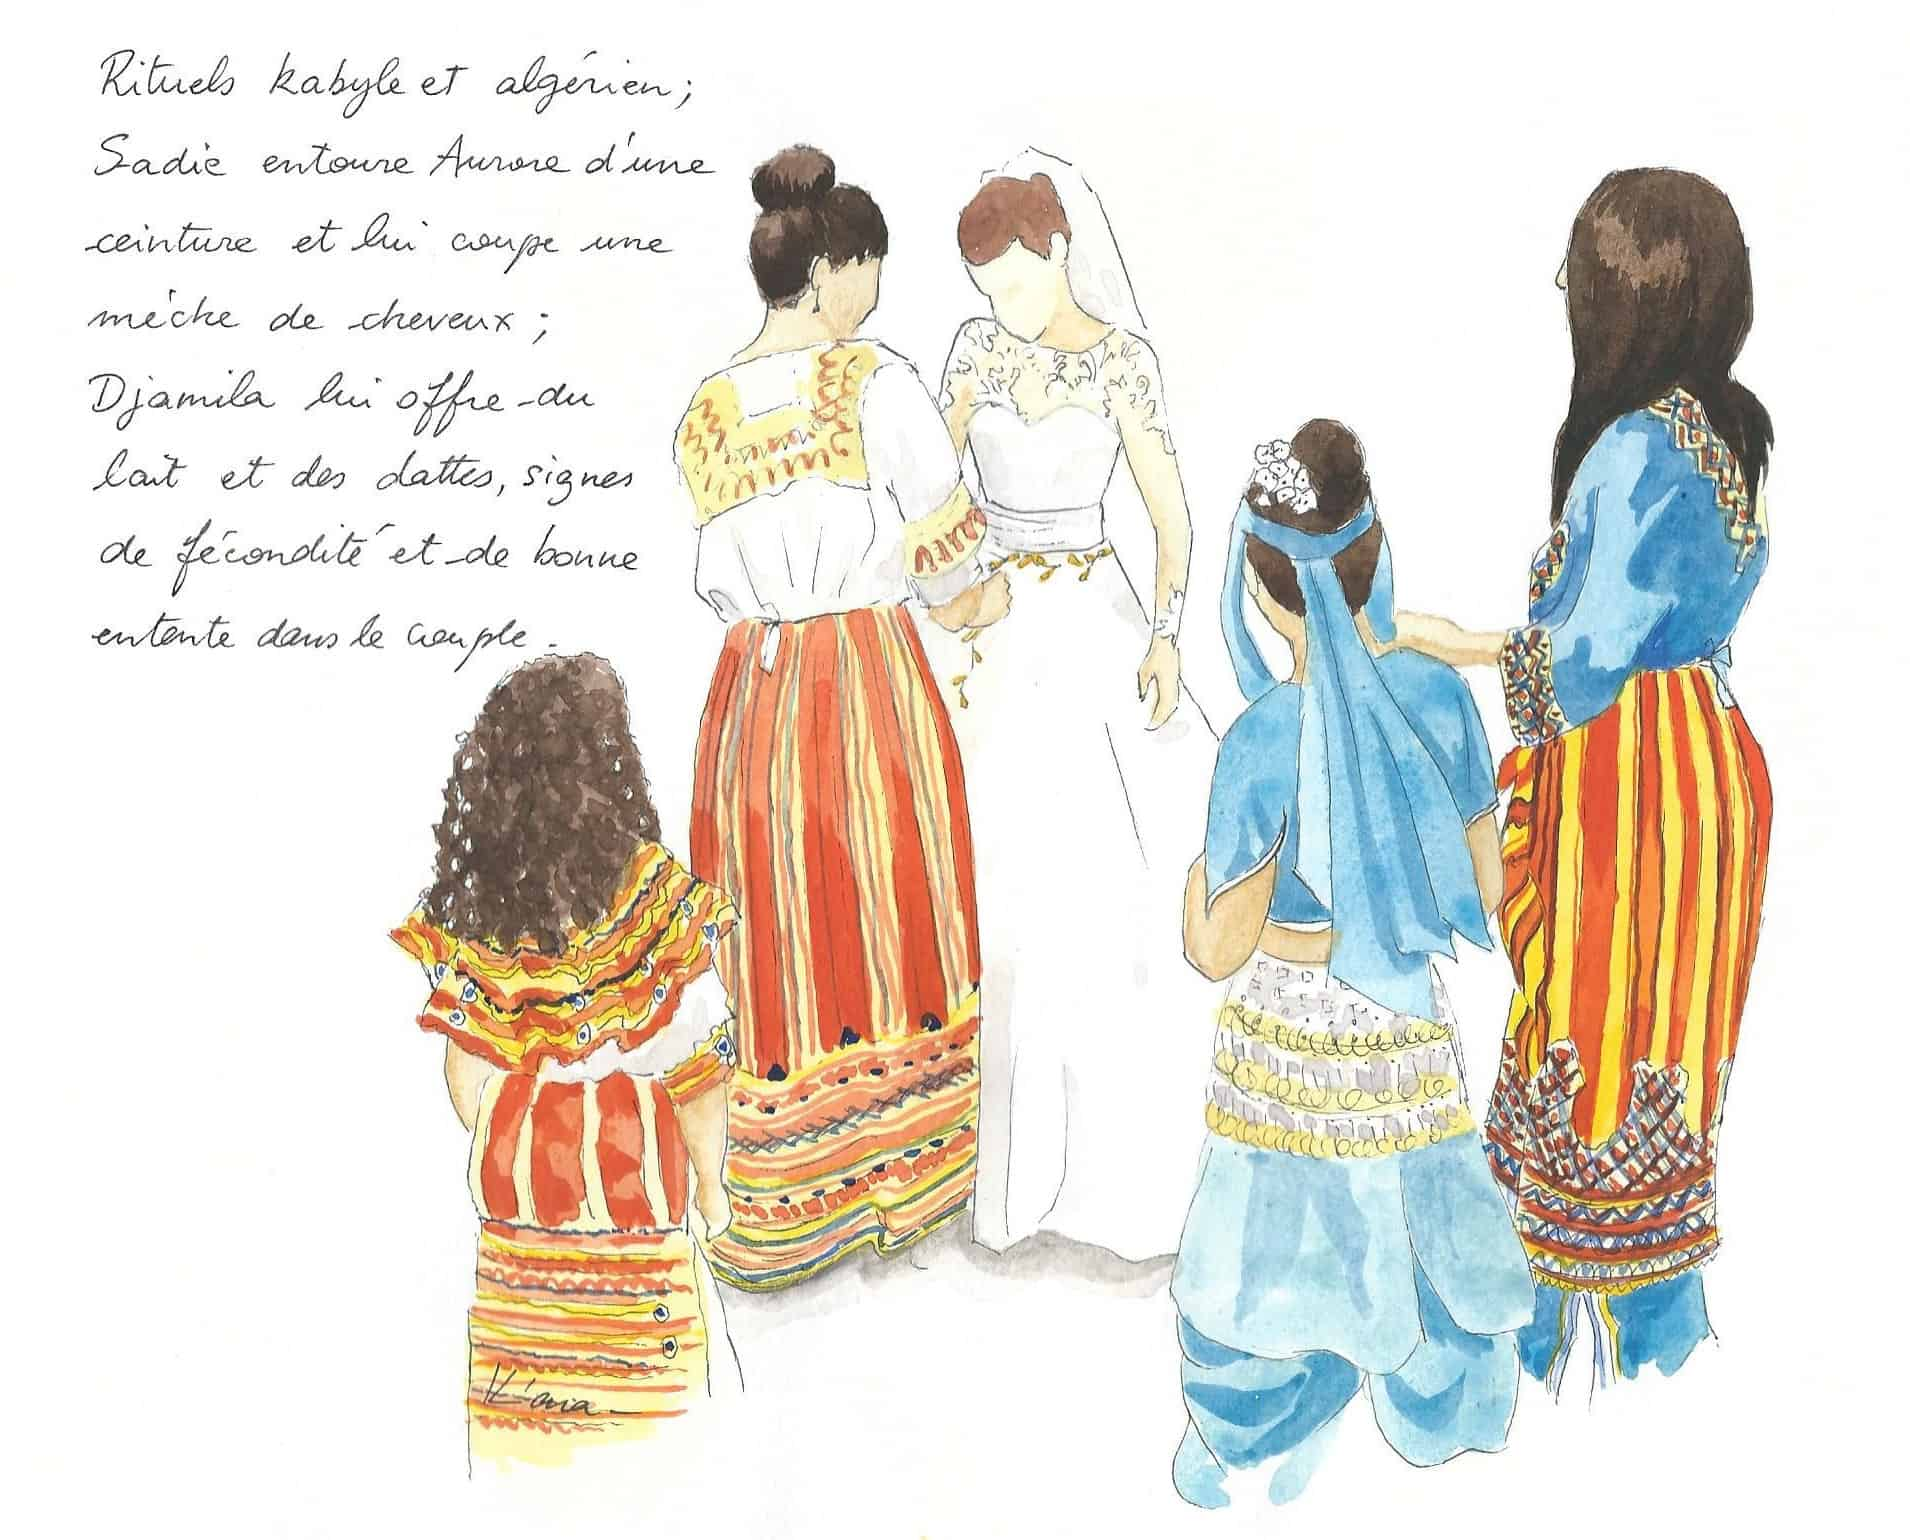 Live painting with an Algerian wedding ritual, Spain